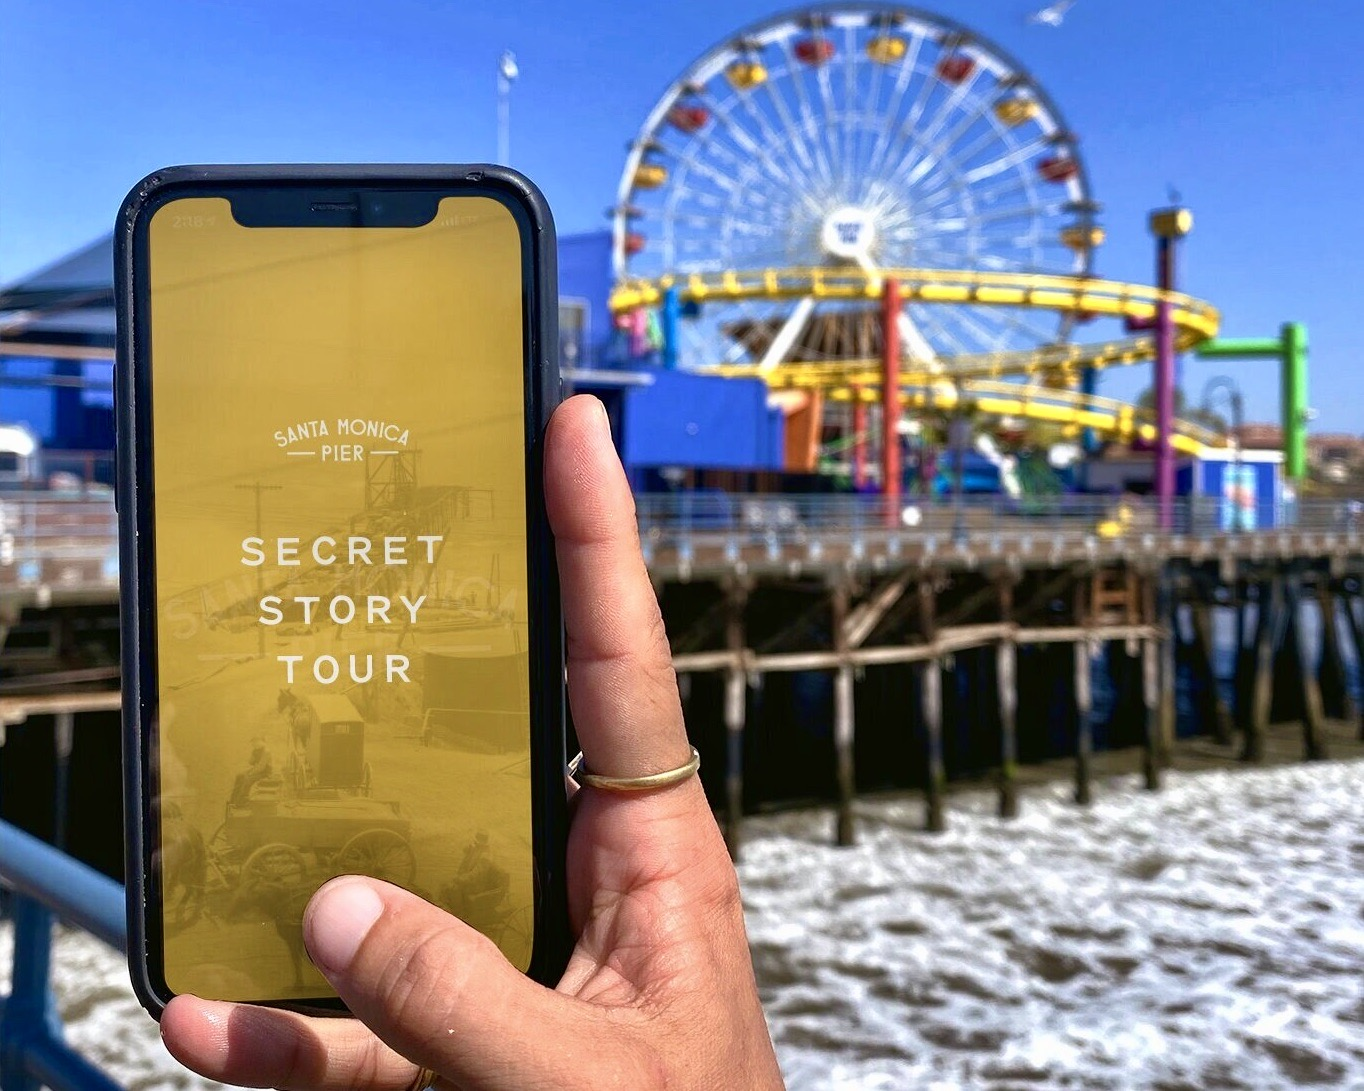 Santa Monica Pier Secret Story Tour